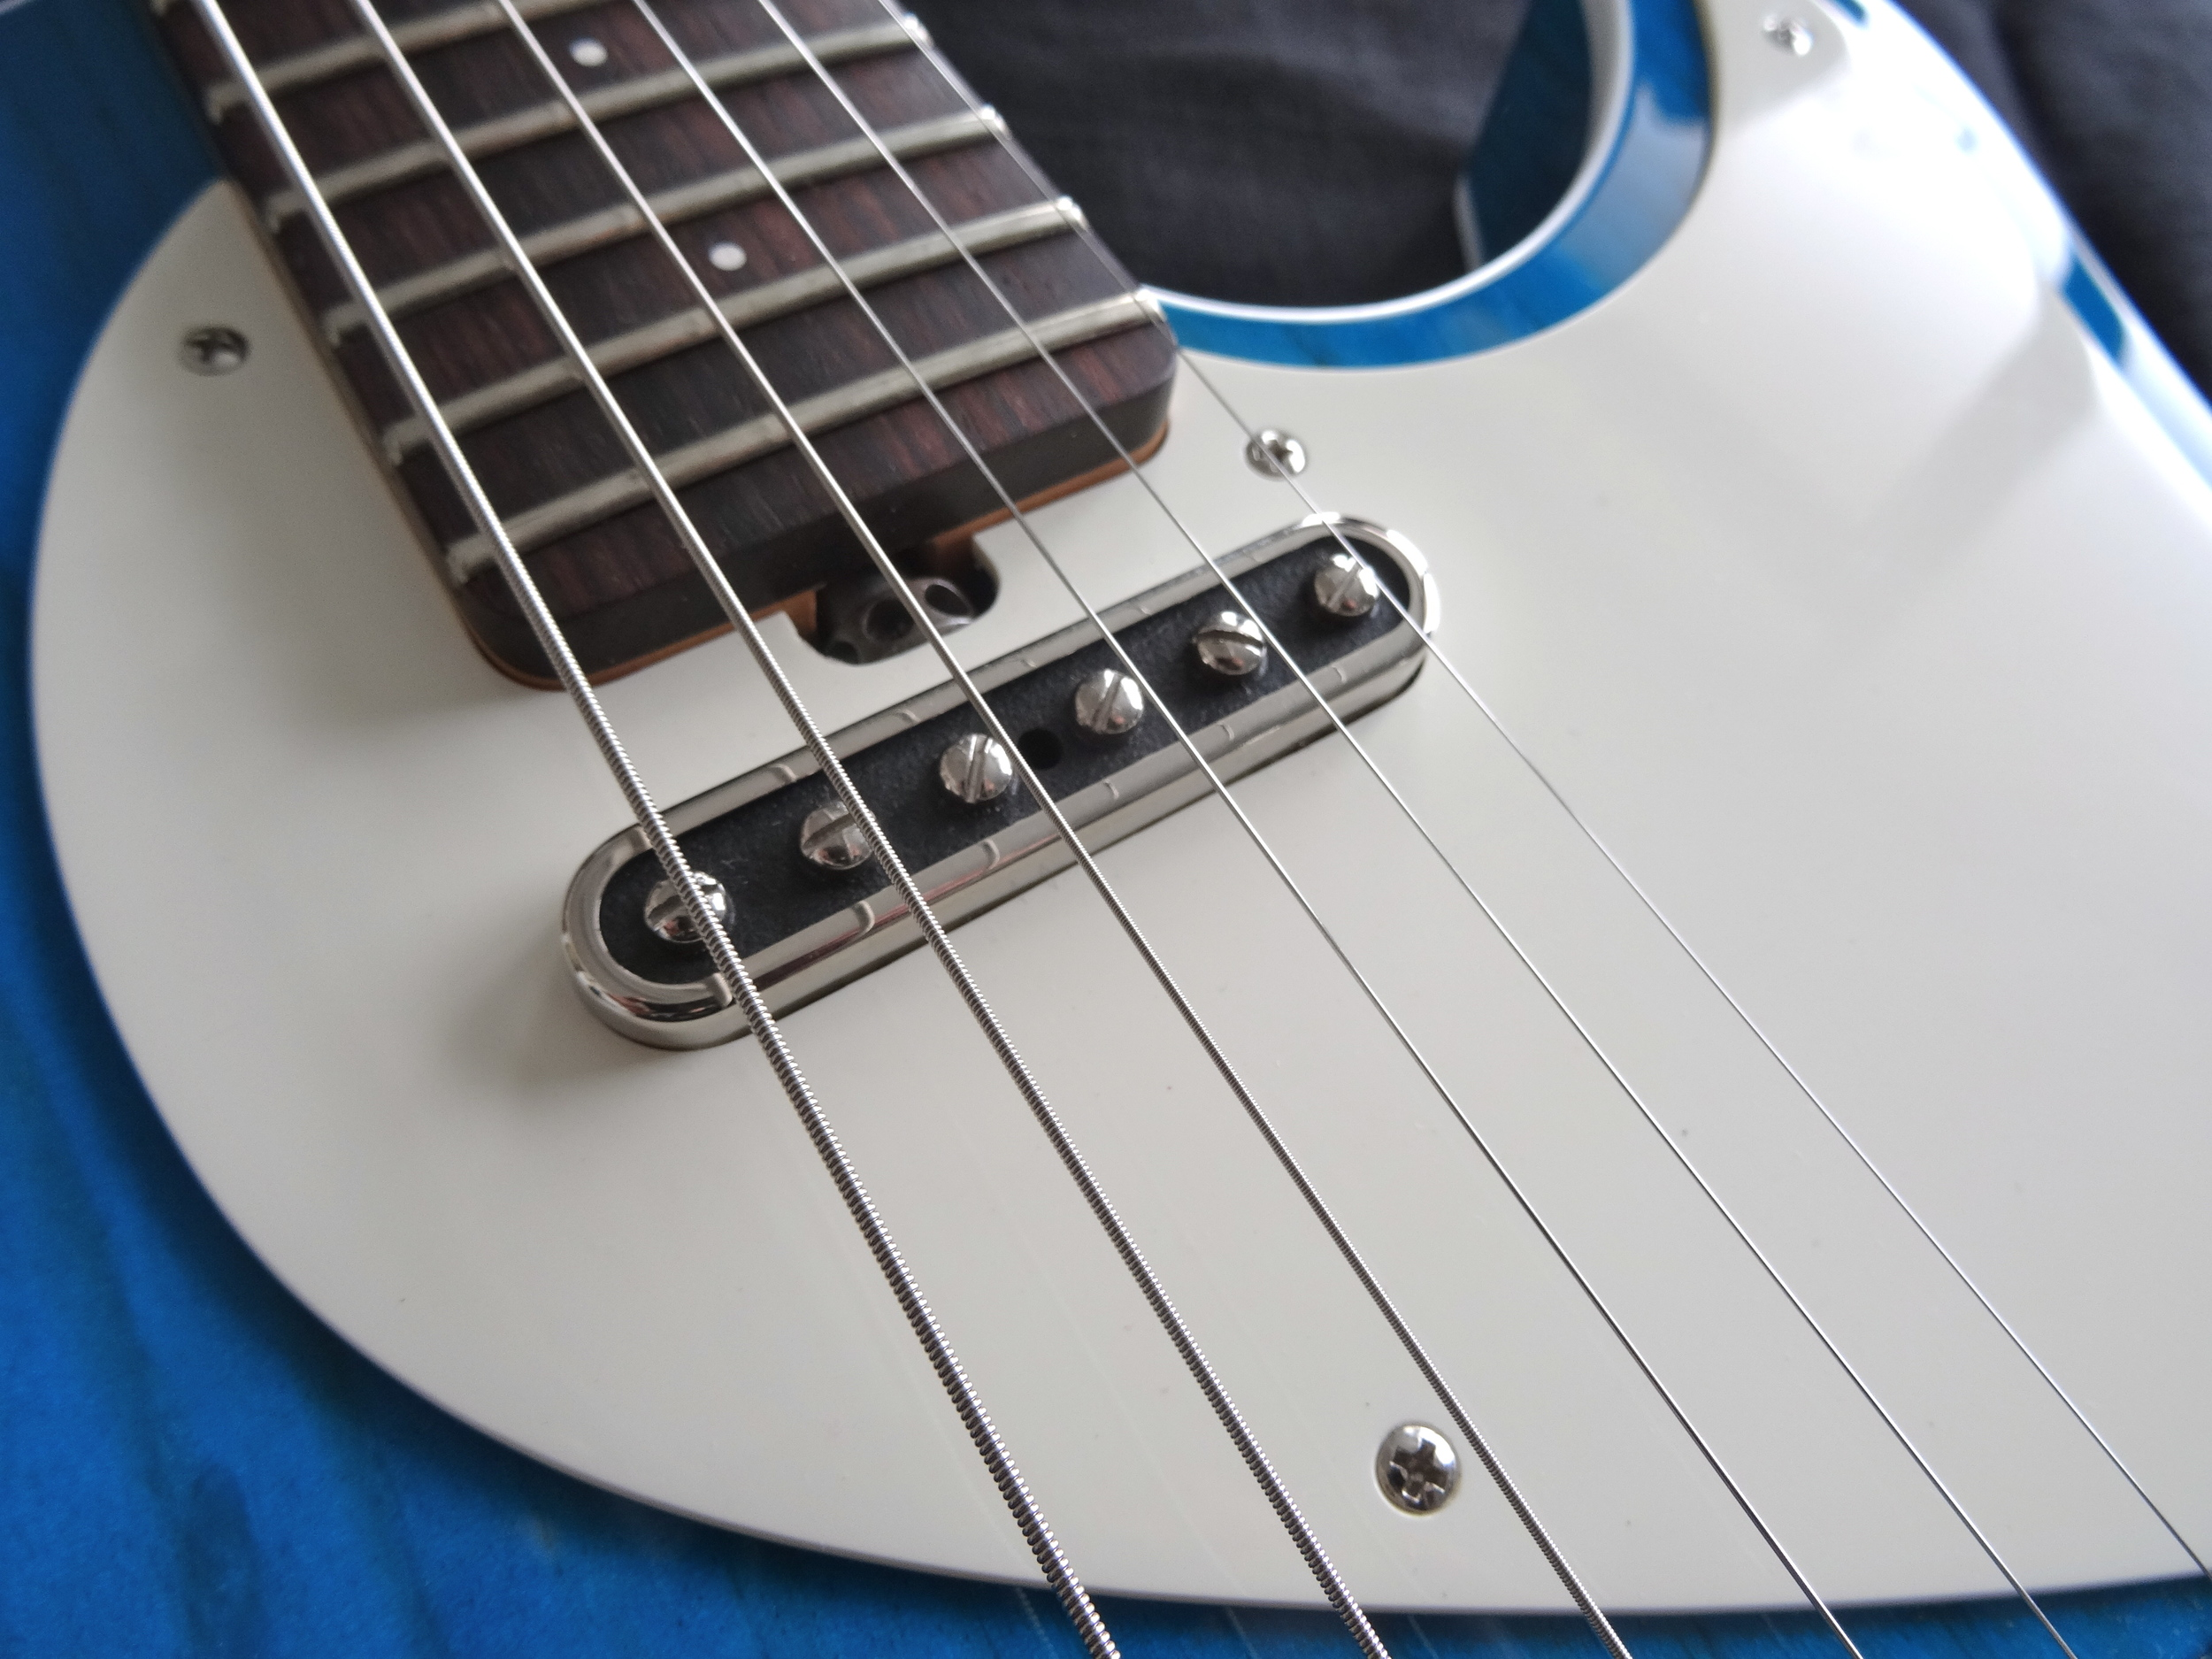 The super-clean single-ply pickguard shows off the Porter T-90 with grace